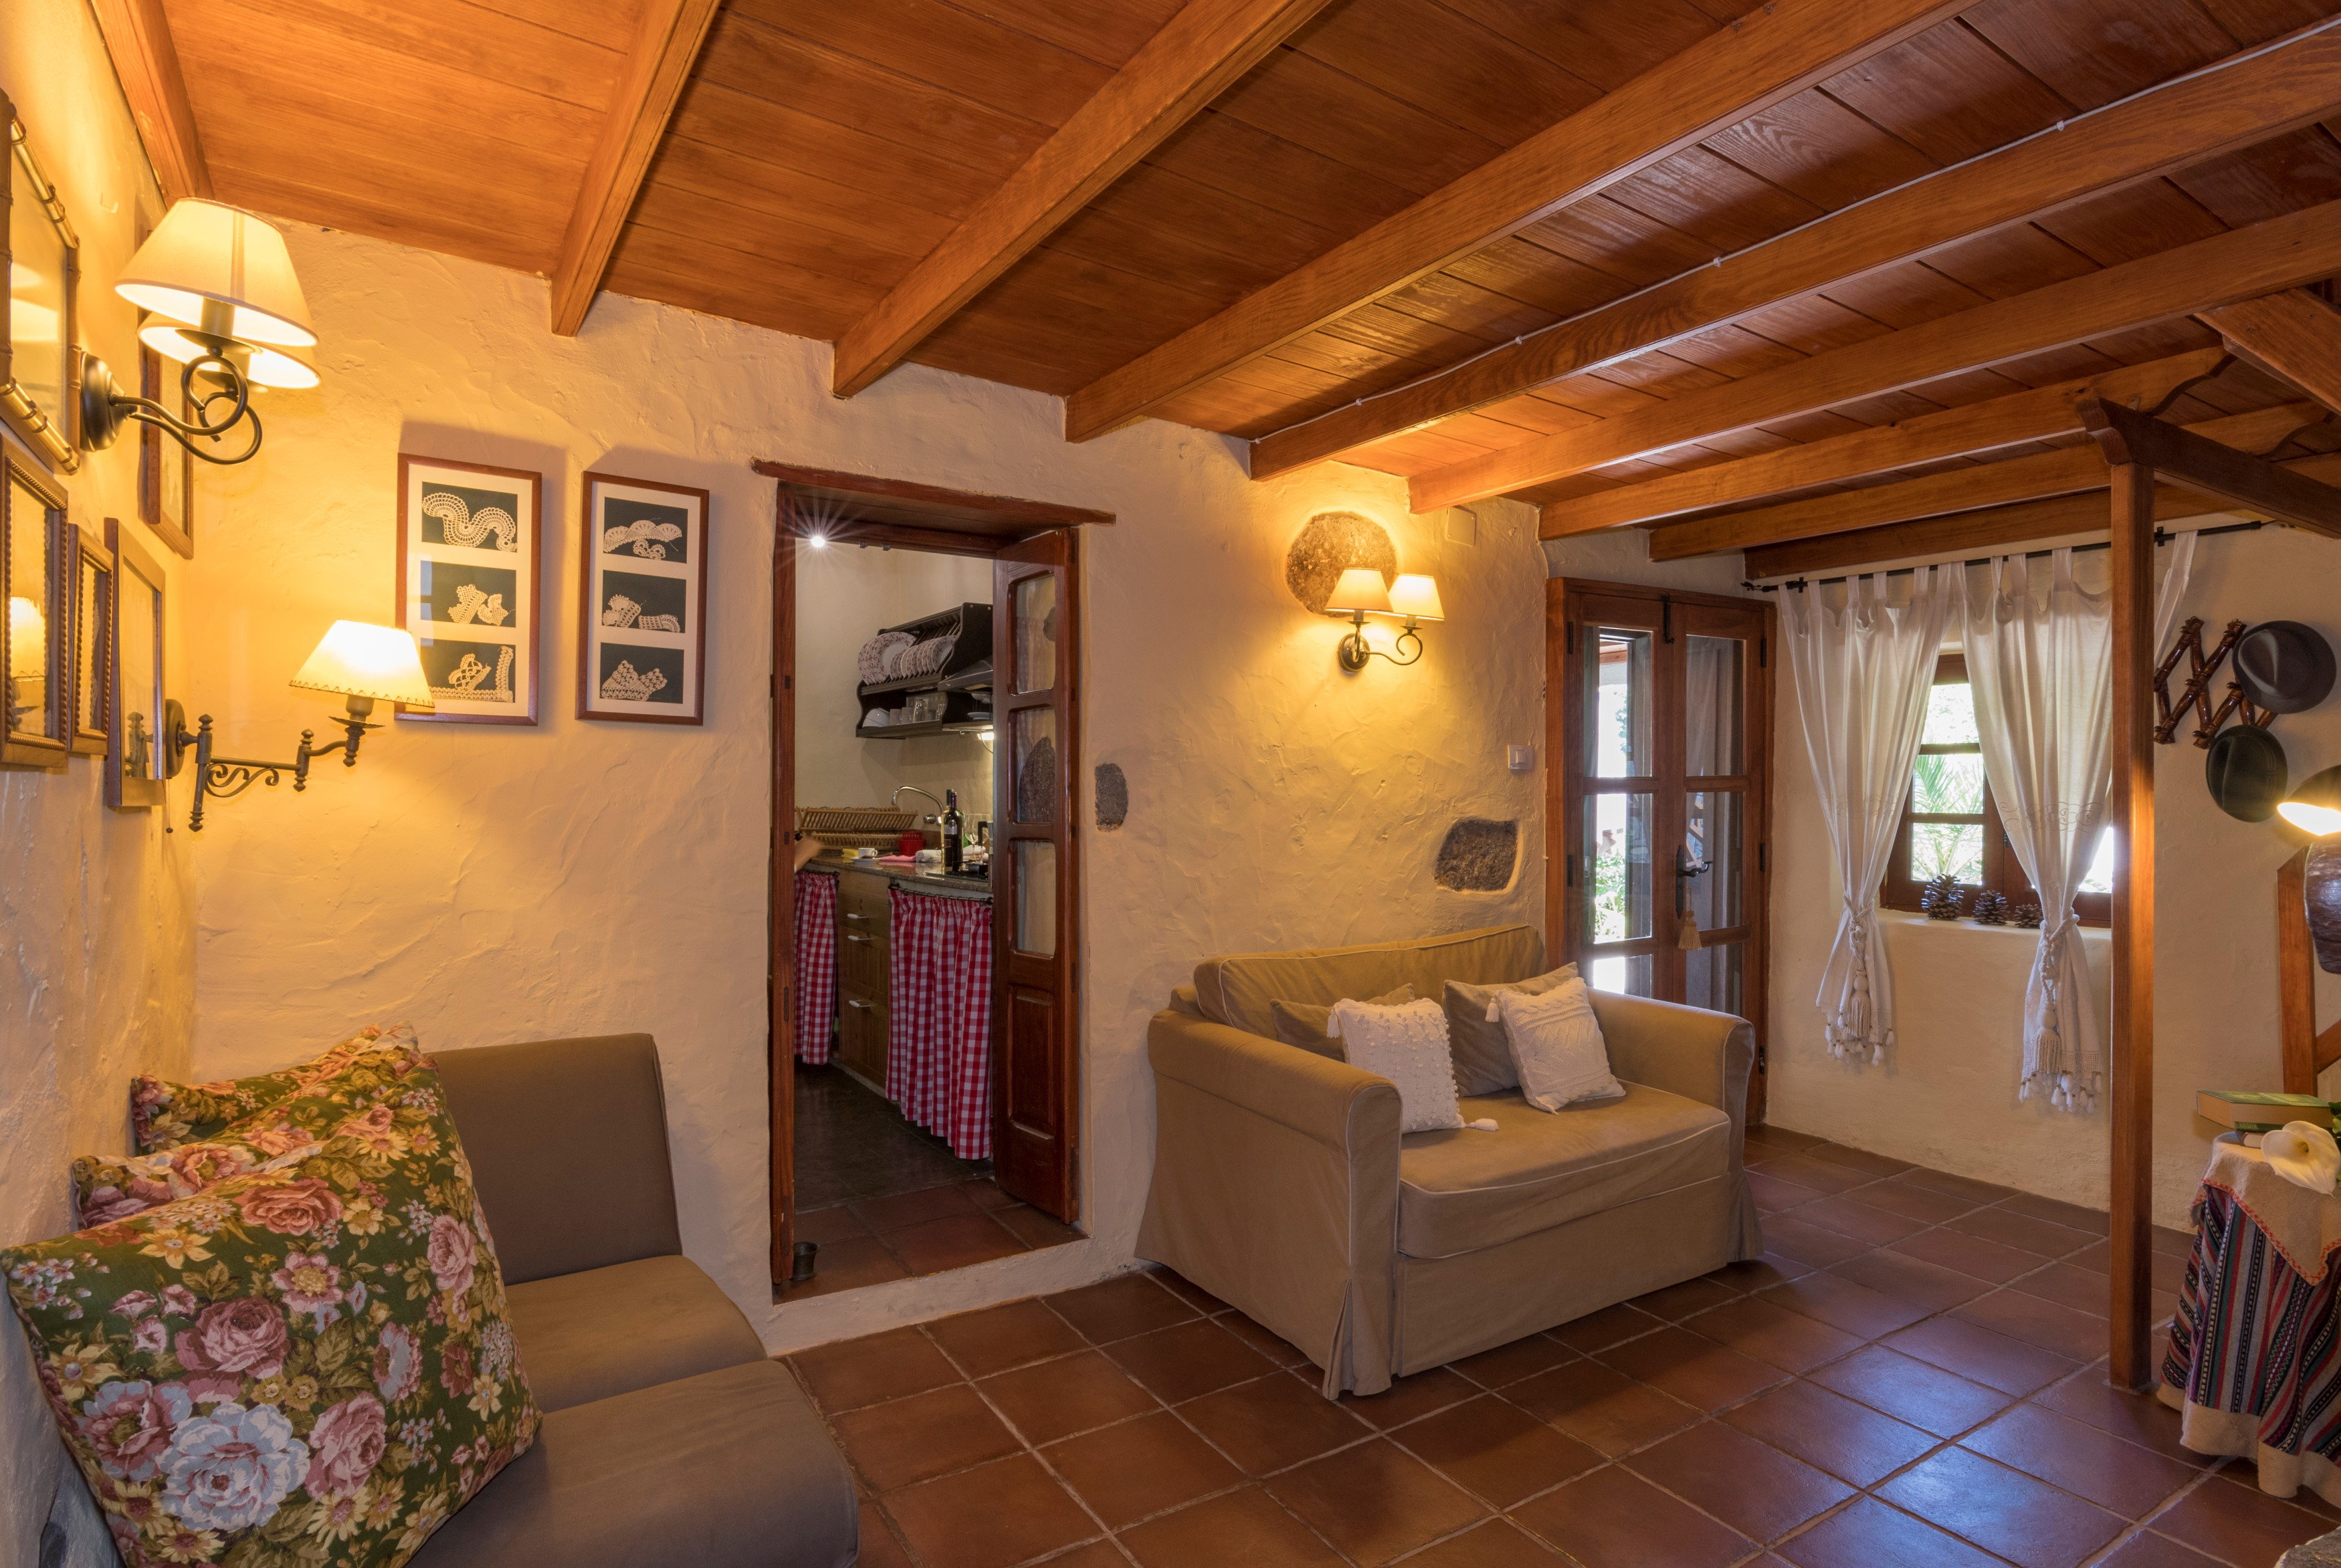 Maison de vacances House - 2 Bedrooms with Pool and WiFi - 106781 (2742990), San Fernando, Grande Canarie, Iles Canaries, Espagne, image 2